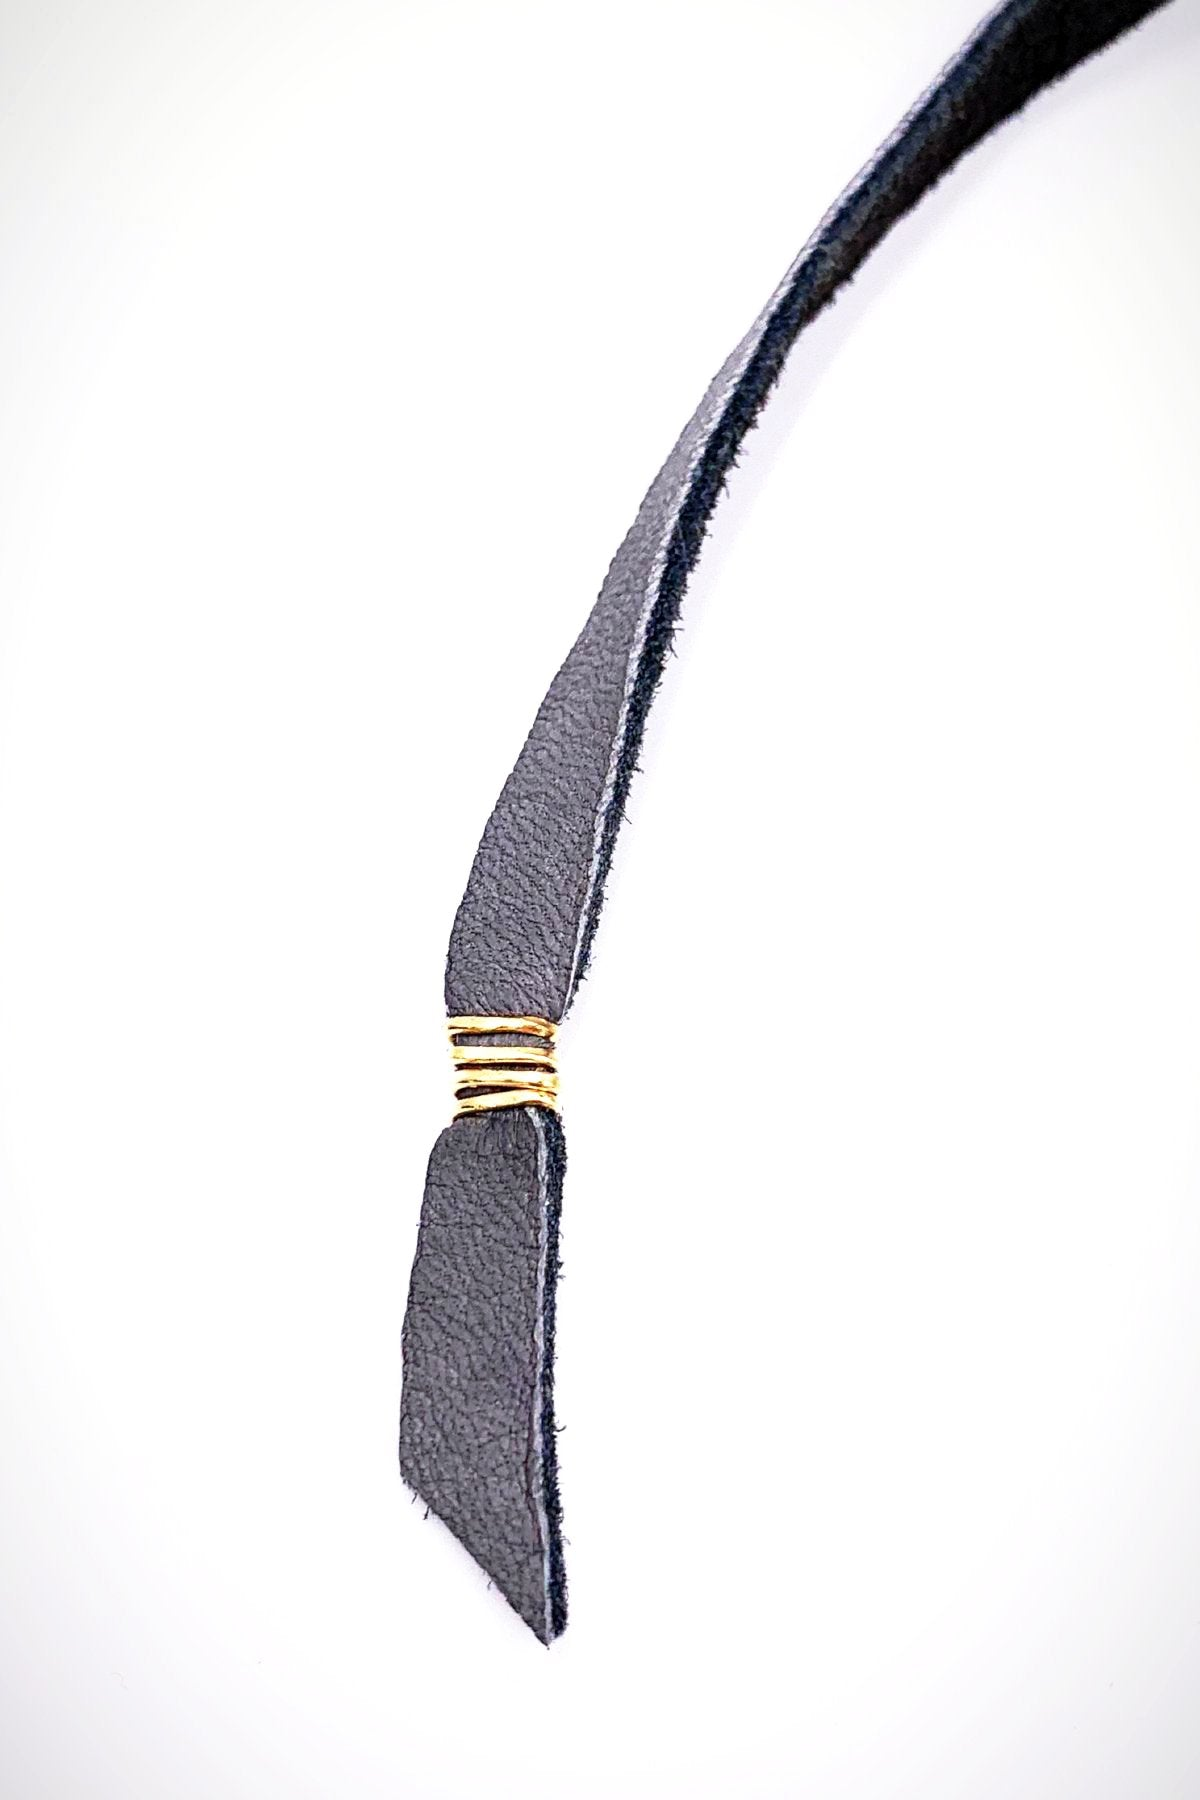 Sliding Crescent & Leather Strand